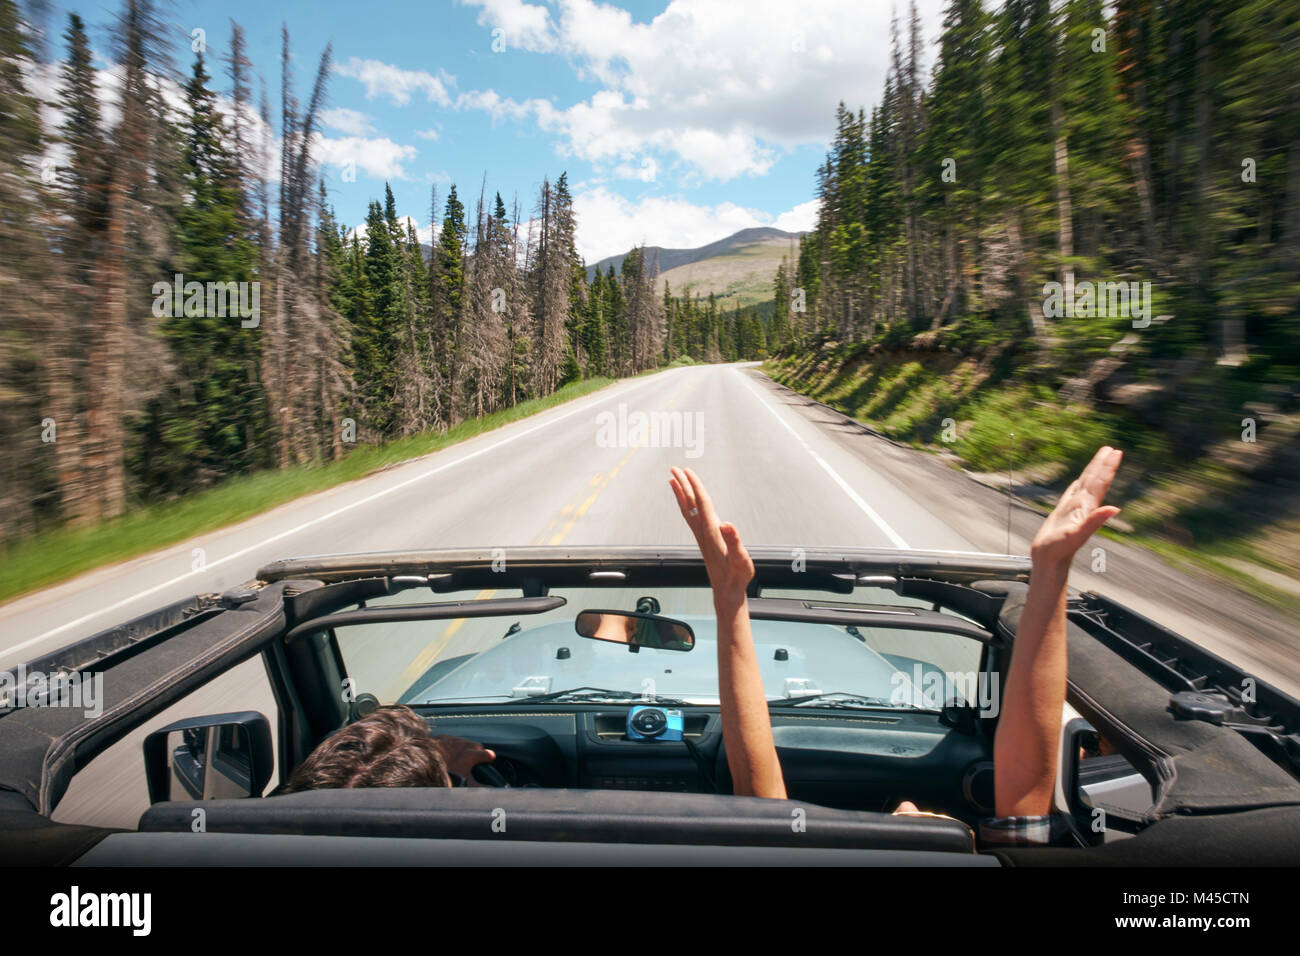 Road trip couple driving convertible on rural highway with hands raised, Breckenridge, Colorado, USA - Stock Image